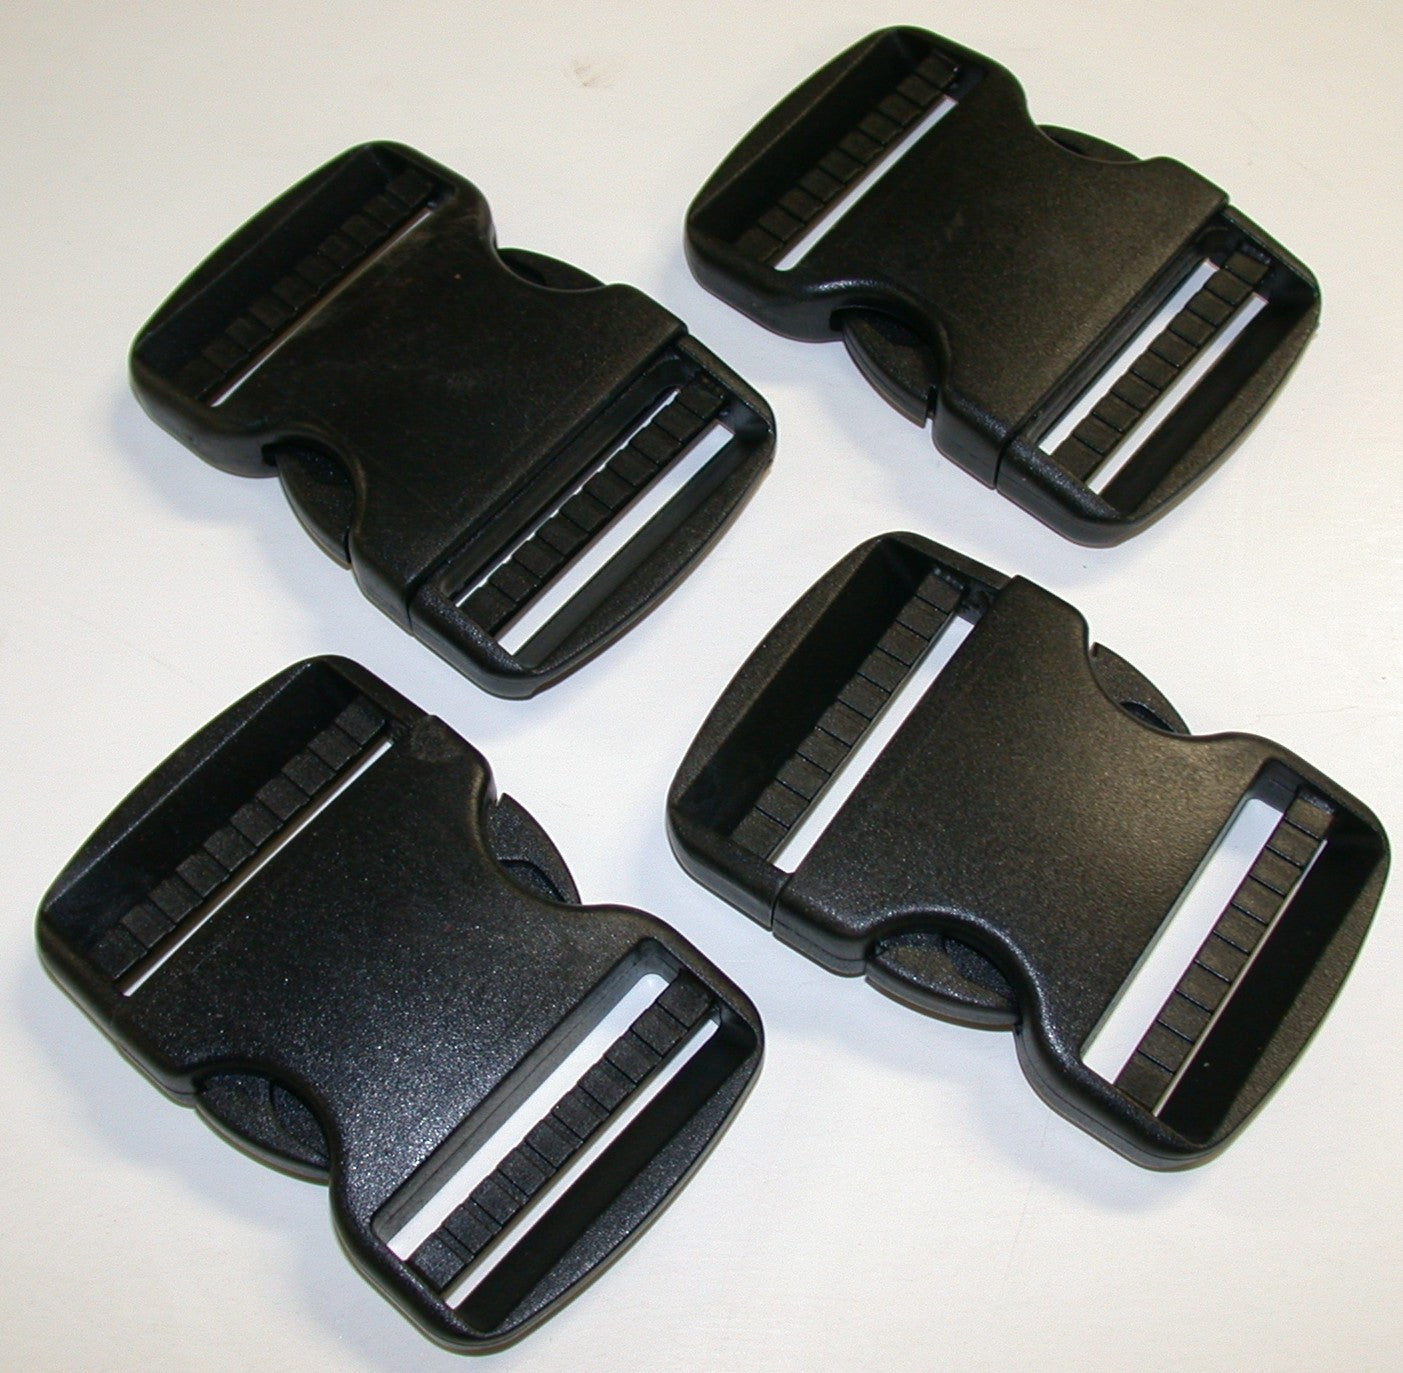 SR2- A set of 4 plastic side release buckles use on 2-inch webbing boundary kits